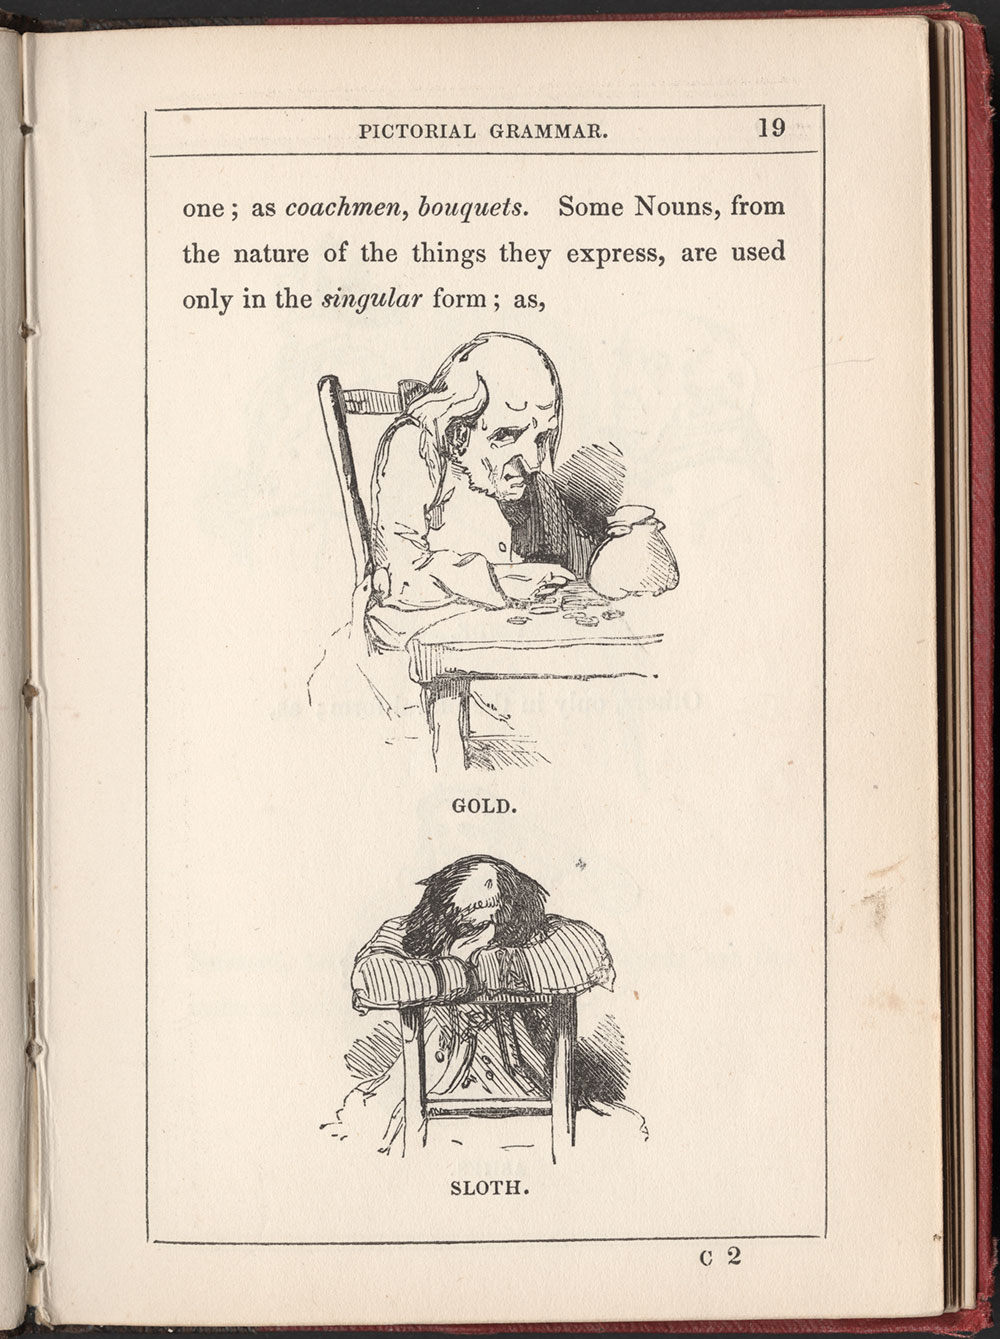 Alfred Crowquill. The Pictorial Grammar. London: Harvey and Darton, 1842. #2